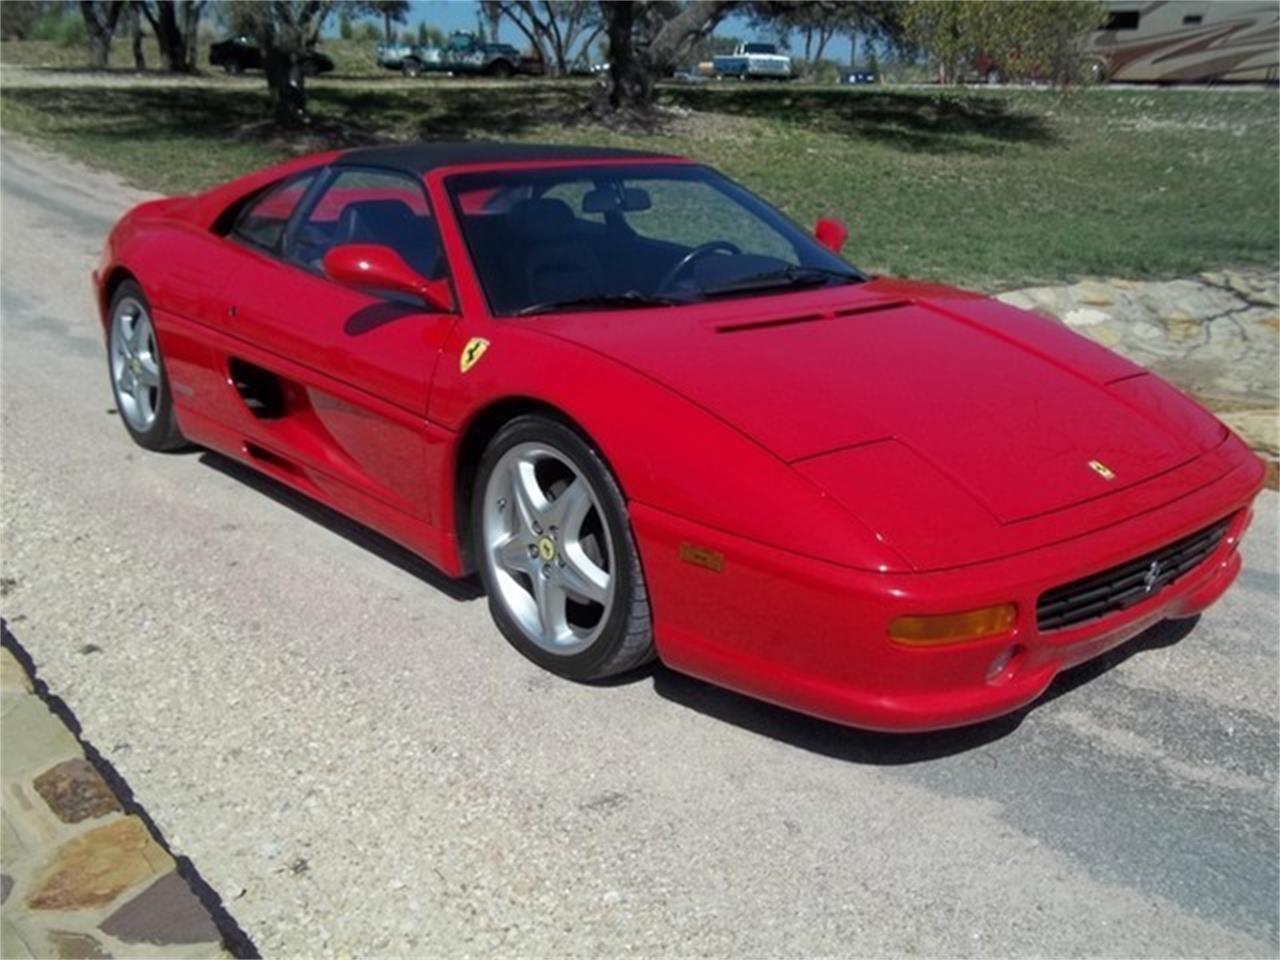 Large Picture of '98 F355 GTS located in Texas - $74,900.00 - ET9K